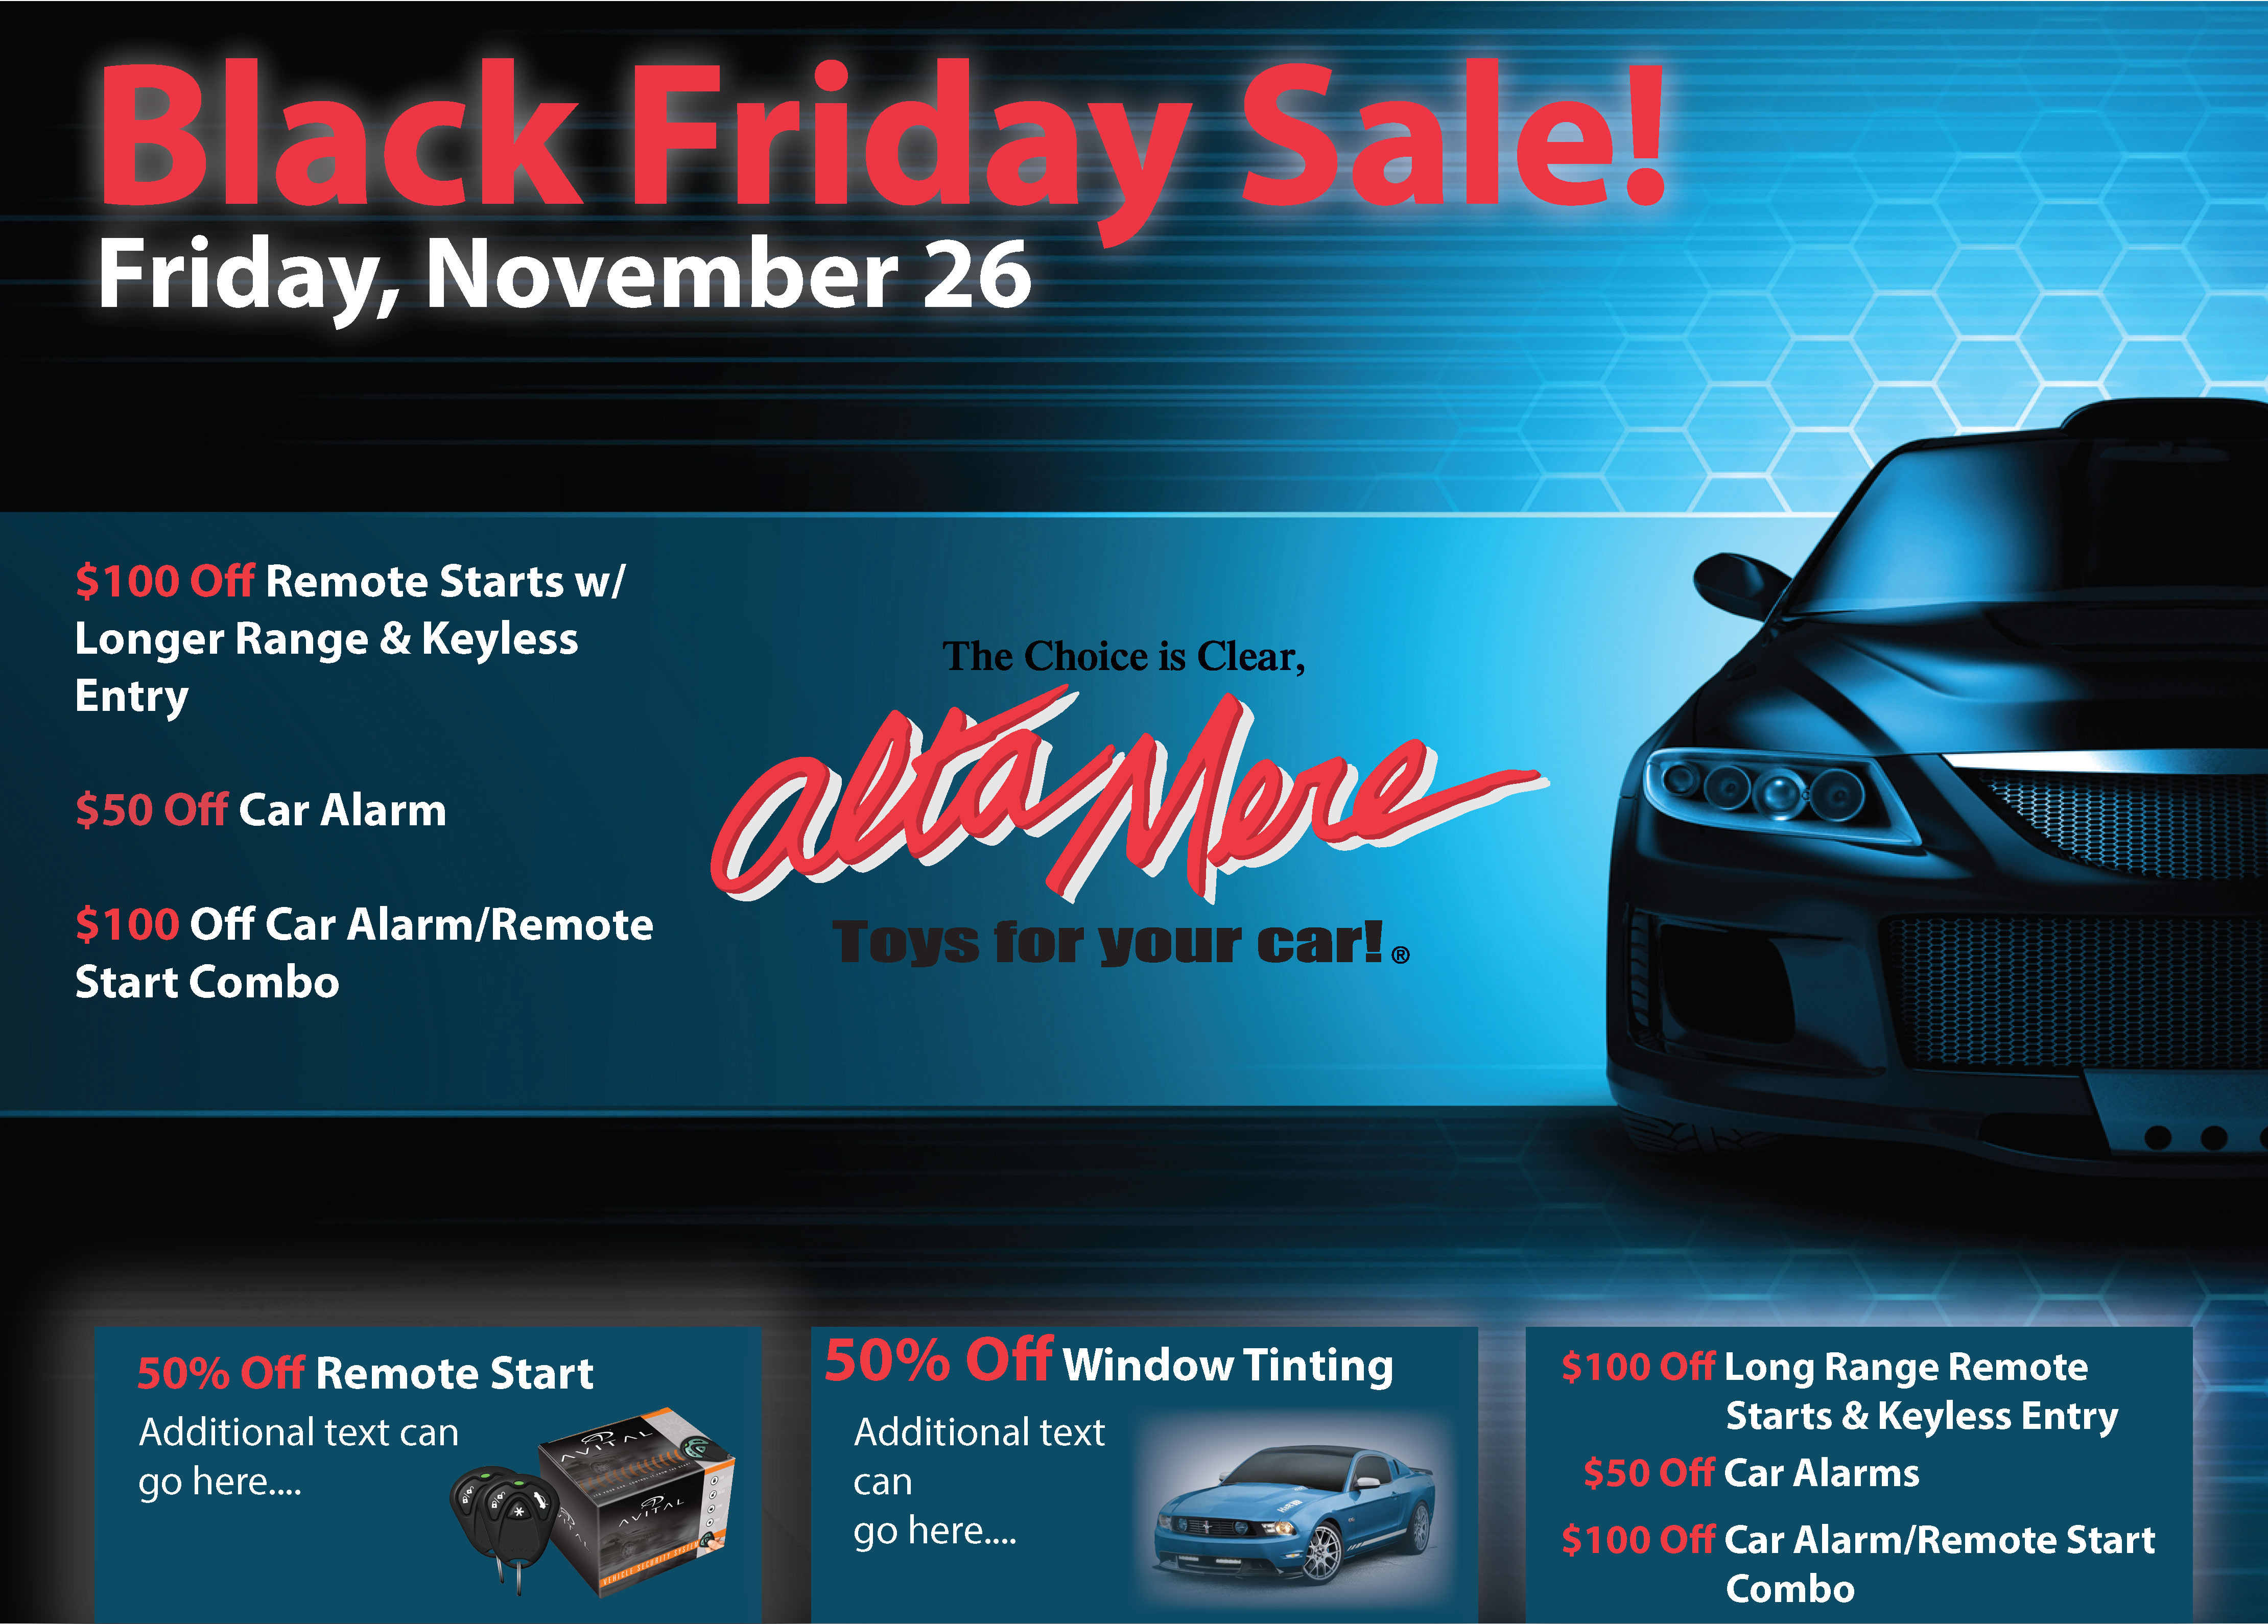 111113Black Friday Direct Mail_6x9_v1_OK004